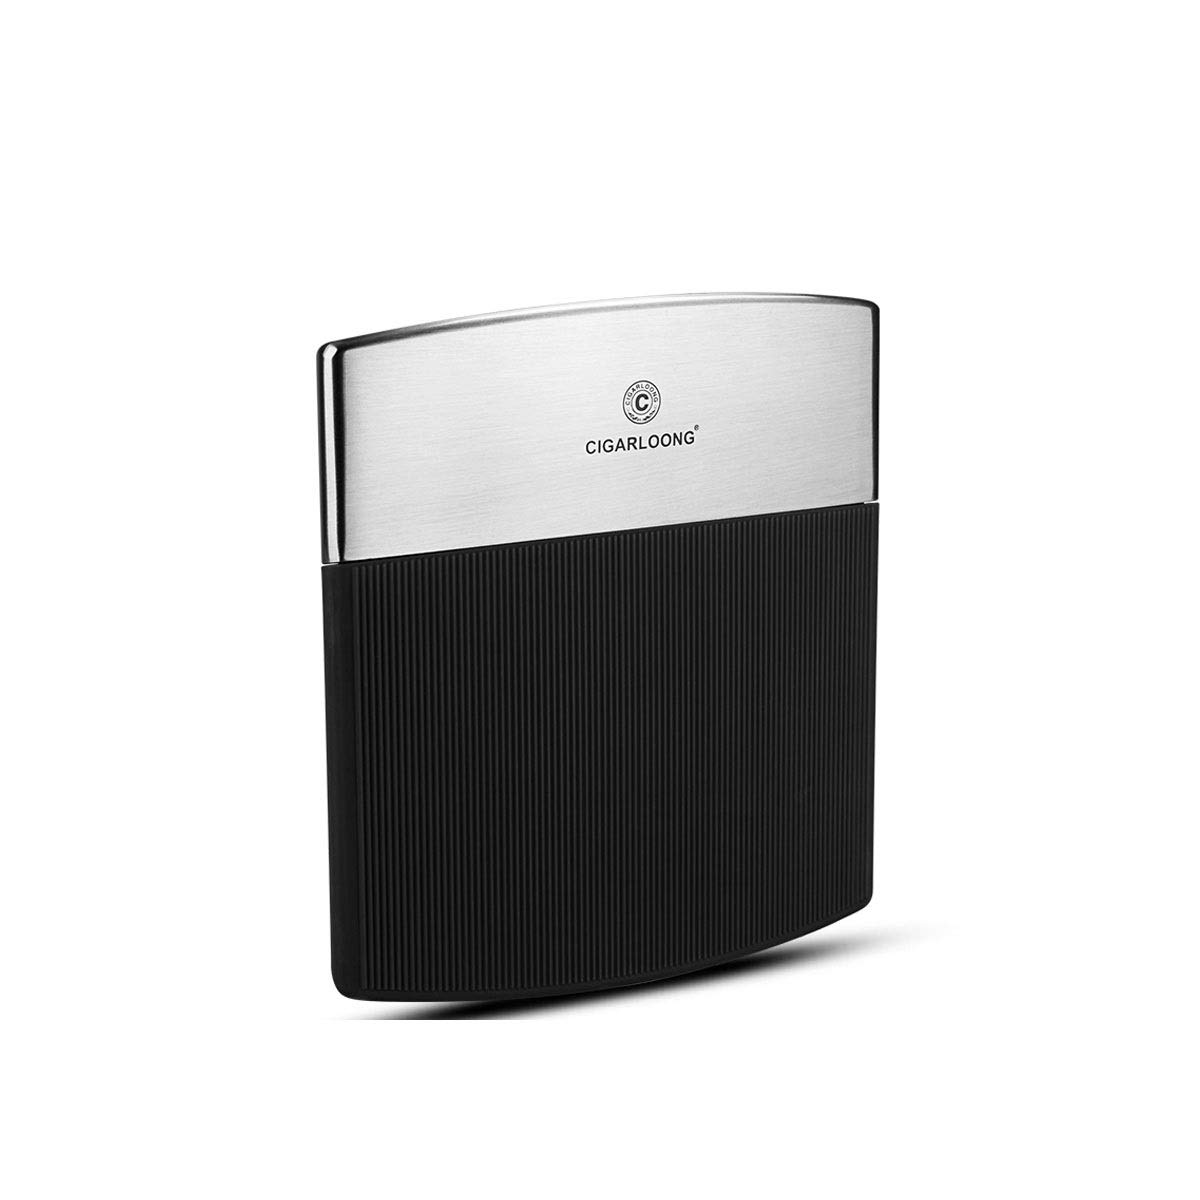 ZHONGYUE Cigarette Case, Stainless Steel Cigarette Case, Portable Portable Fashion Cigarette Case, 10 Capacities Unique Design, Sturdy and Lightweight. (Color : Black)